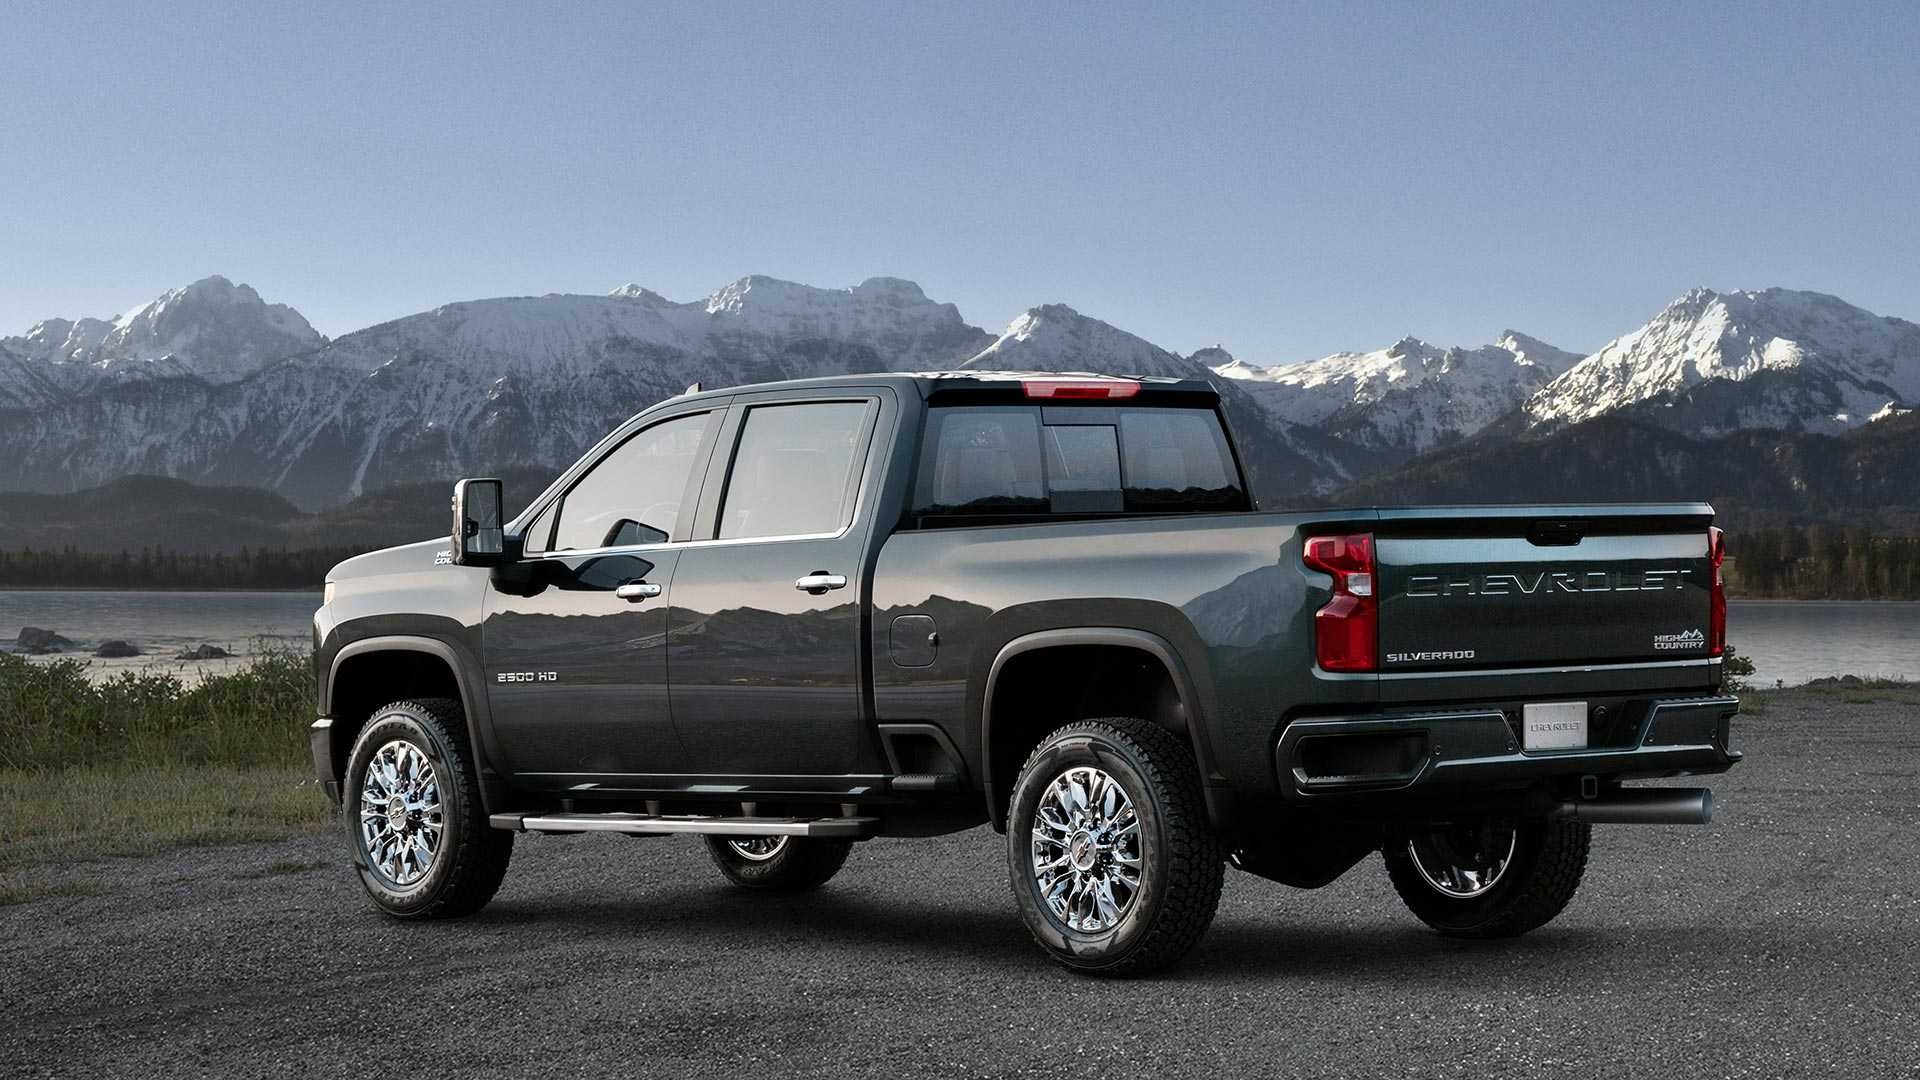 2020 GMC Sierra HD Denali Teased, Expected To Debut In Chicago - autoevolution